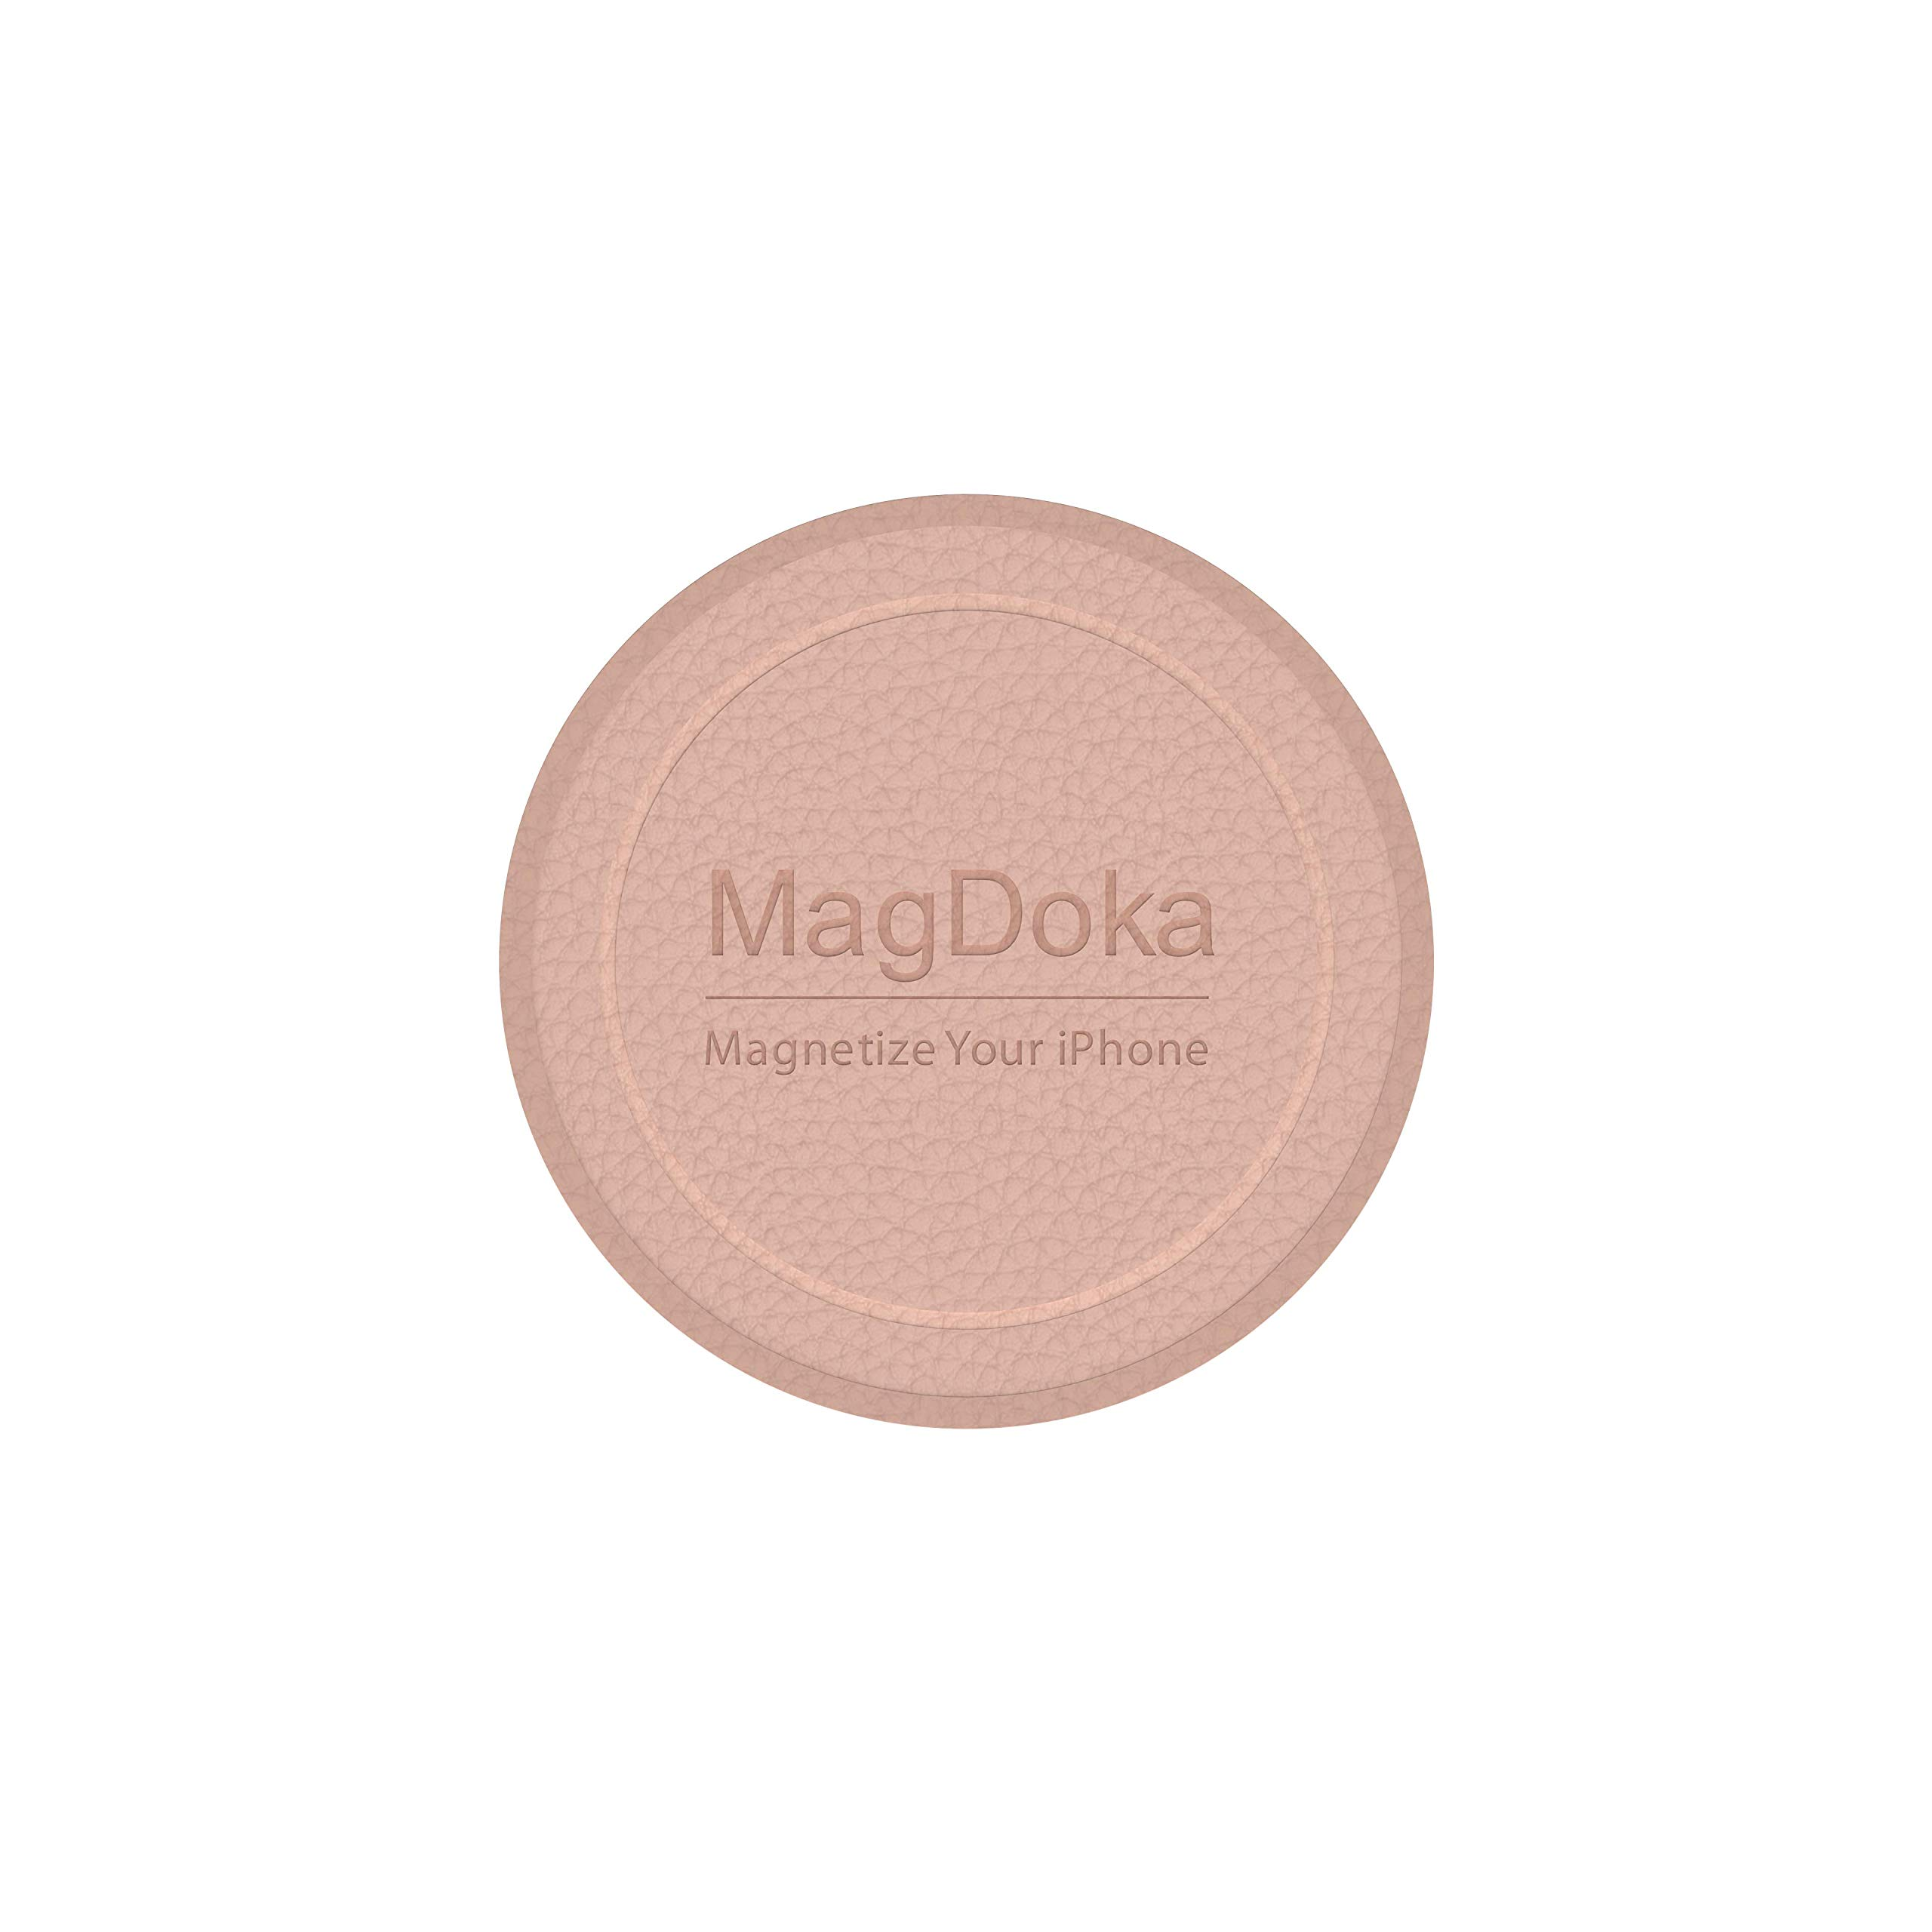 MagEasy Magnetic Mount Plate - MagDoka, Universal Magnet Adhesive Sticker for Car Phone Holder & Cradle, MagSafe Wireless Charging Support, Compatible with iPhone 6/6s/7/8/X/XR/XS/11/12/SE - Pink Sand